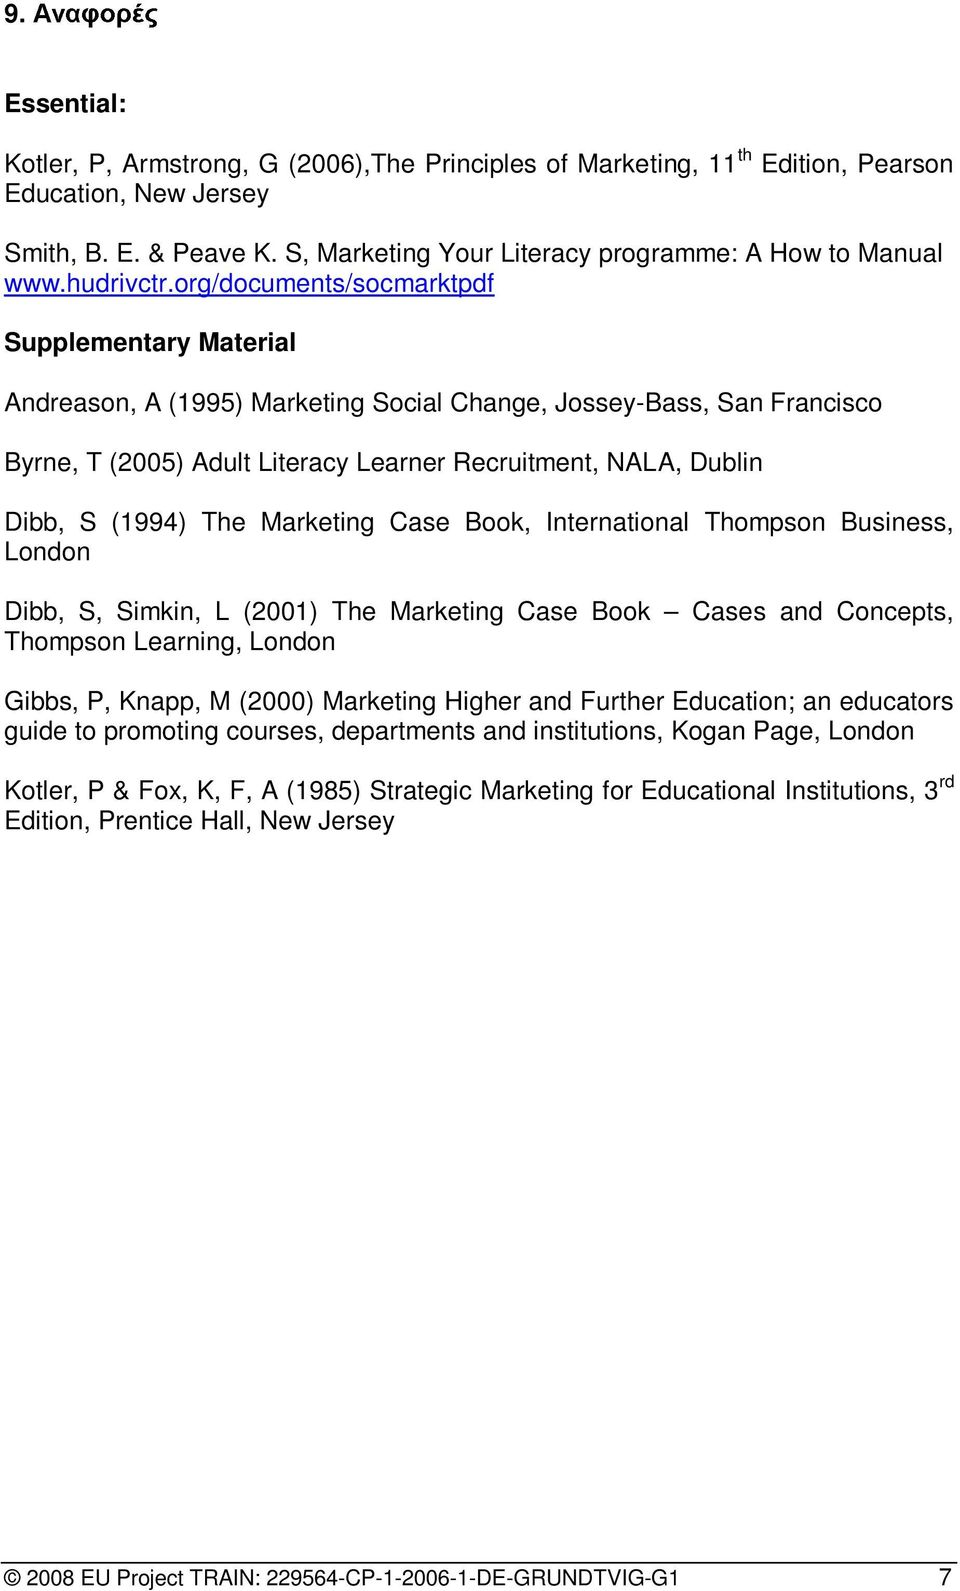 org/documents/socmarktpdf Supplementary Material Andreason, A (1995) Marketing Social Change, Jossey-Bass, San Francisco Byrne, T (2005) Adult Literacy Learner Recruitment, NALA, Dublin Dibb, S